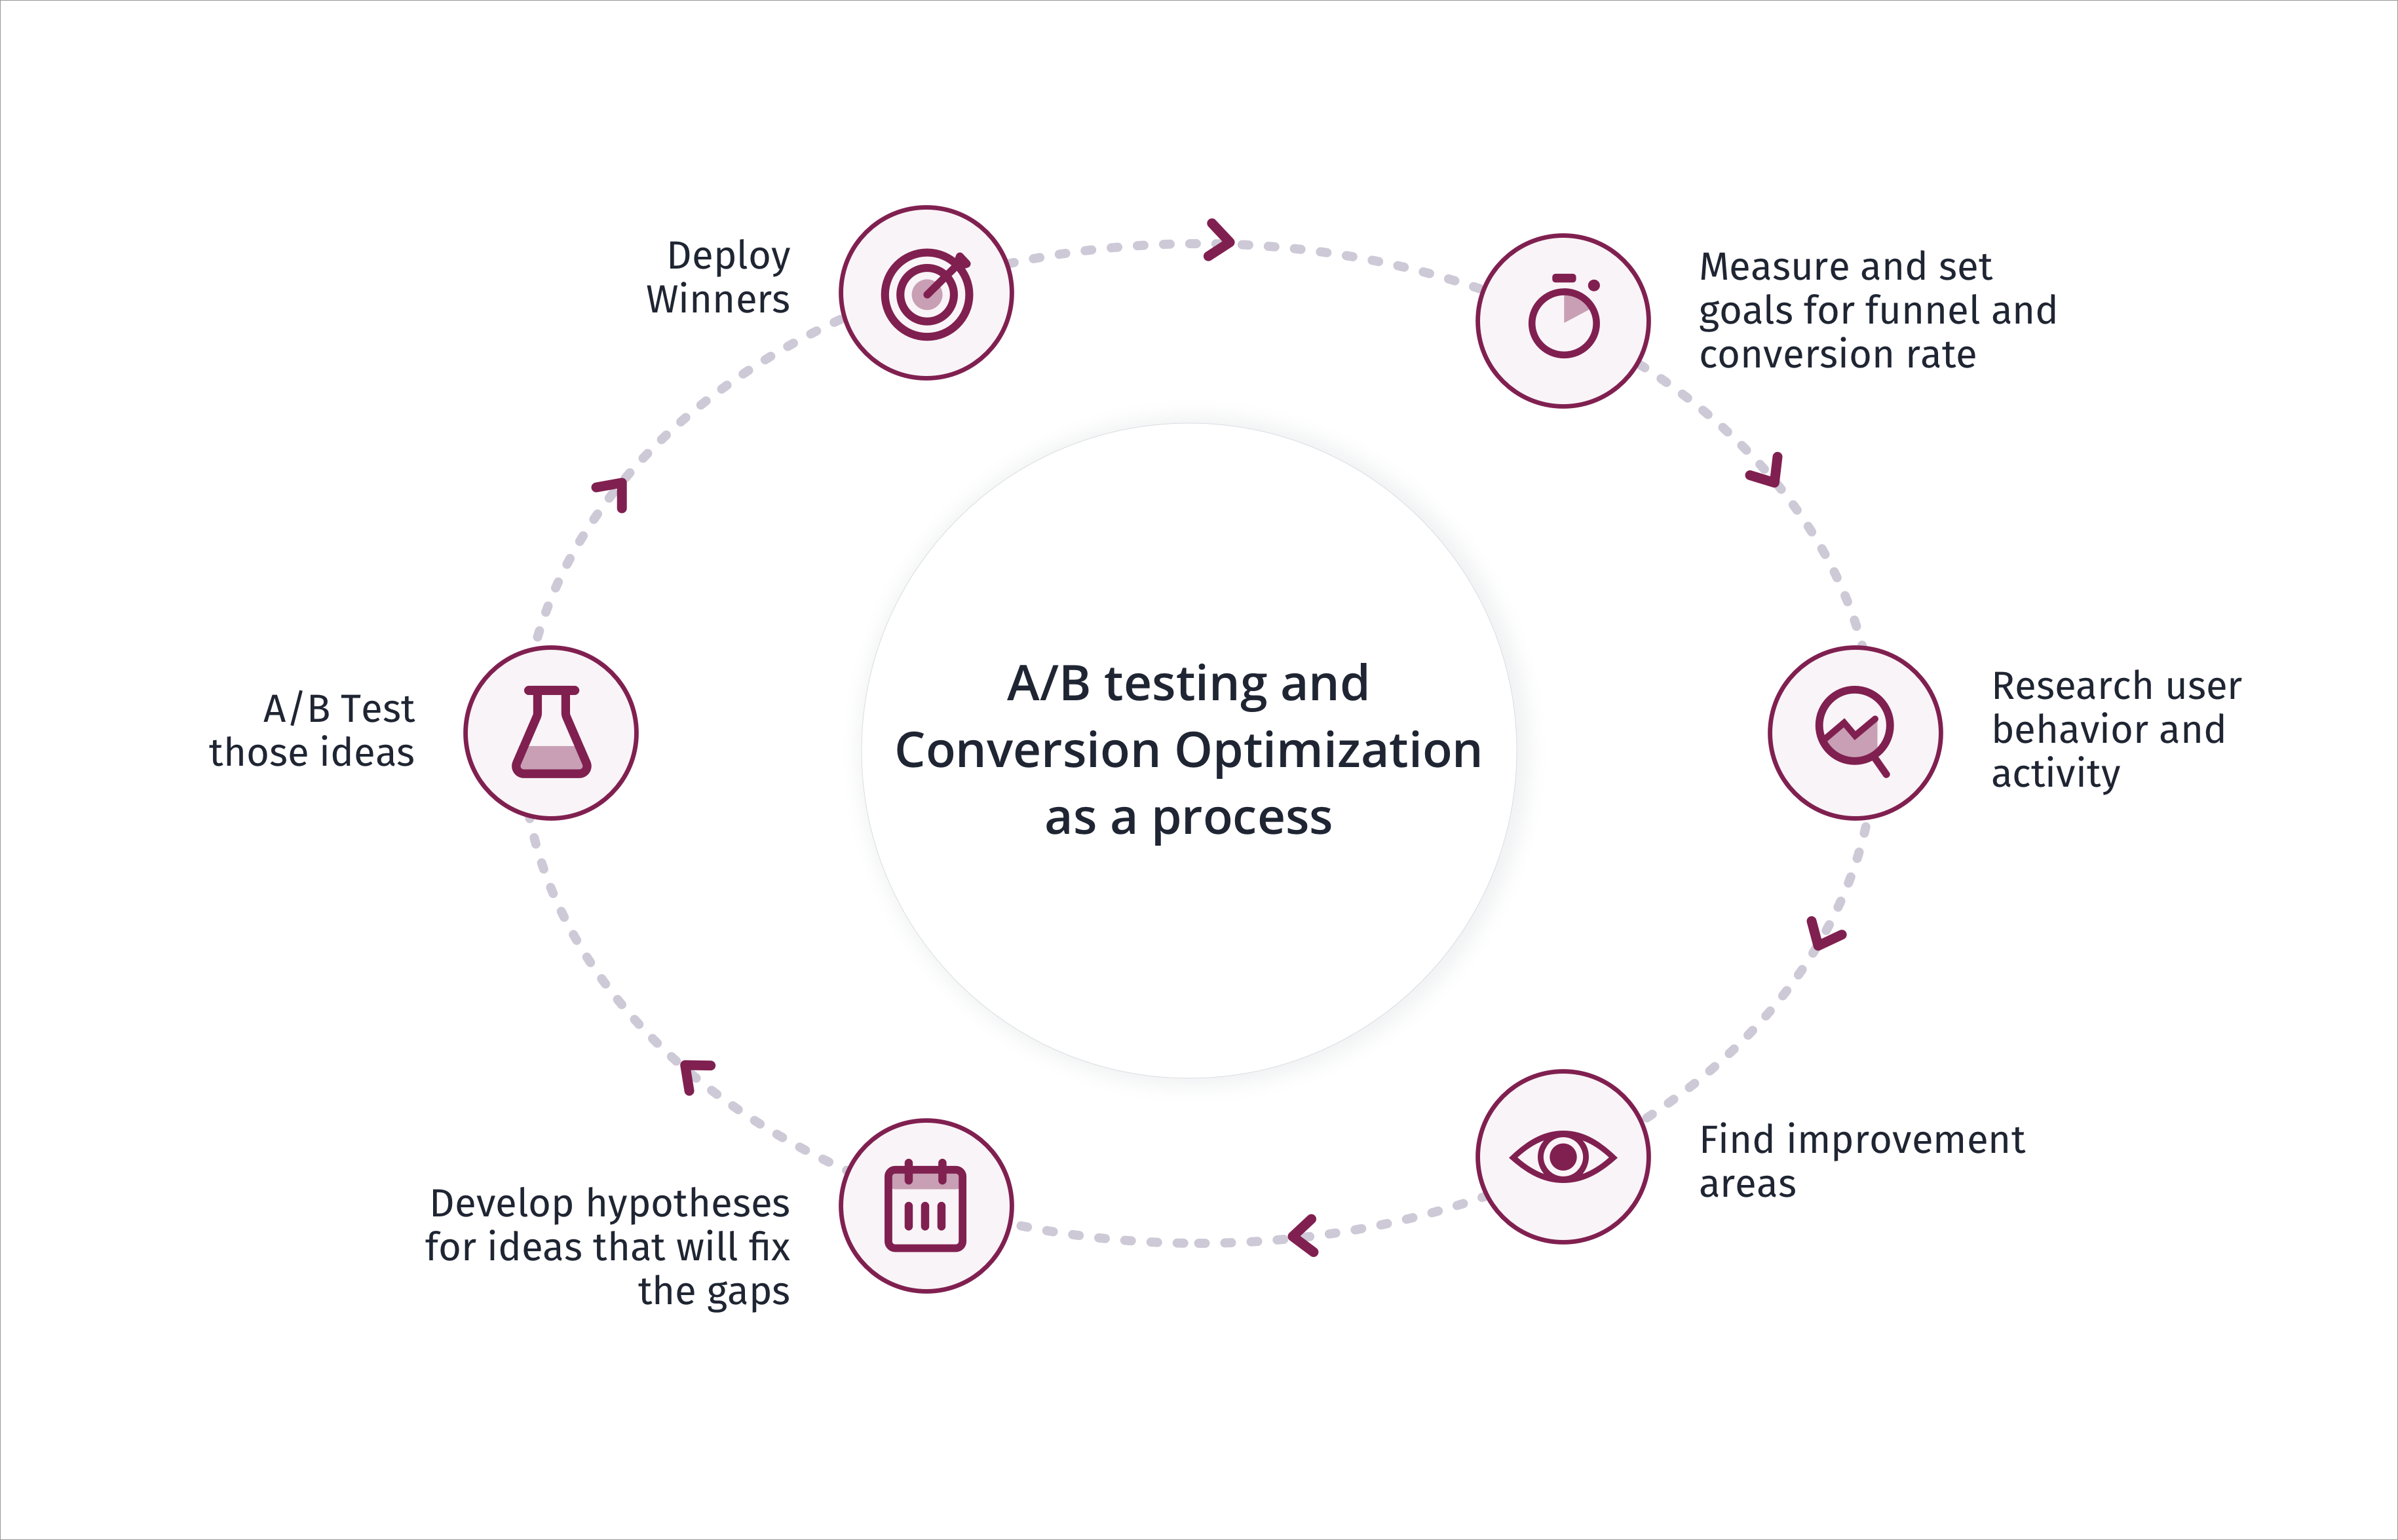 A/B Testing and Conversion Optimization ad a process